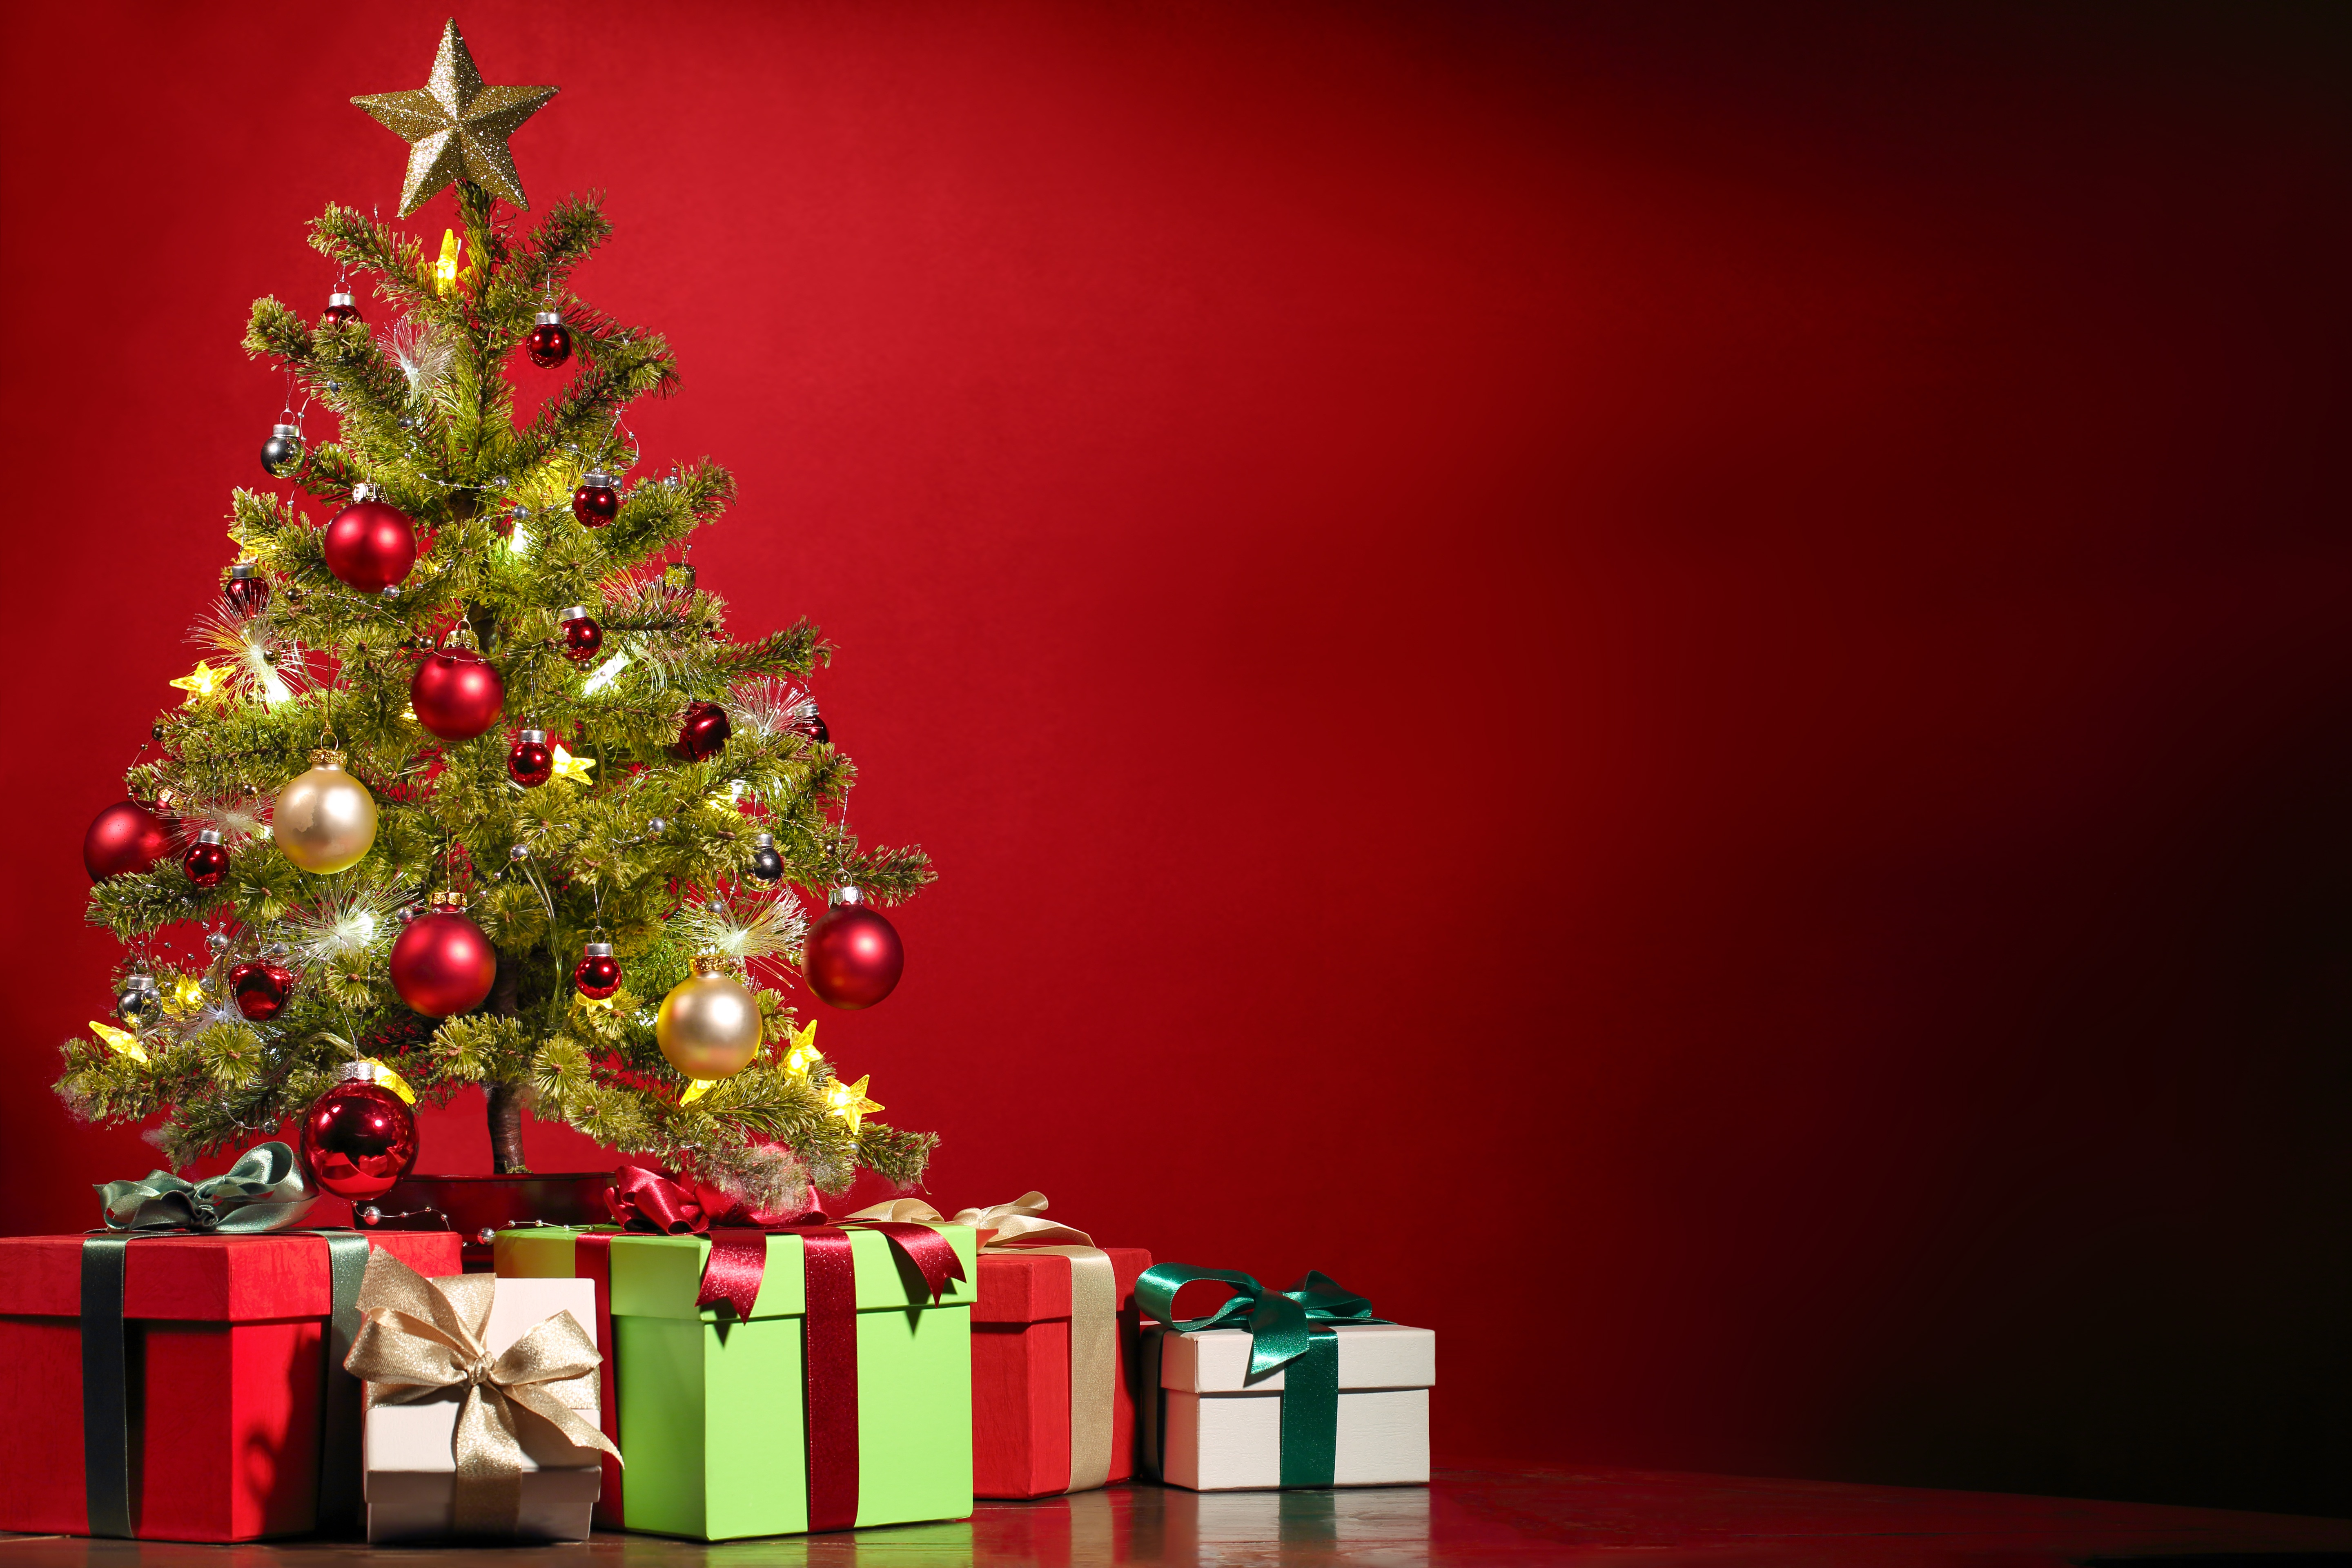 Christmas Presents Under The Tree 5k Retina Ultra Hd Wallpaper Background Image 5760x3840 Id 775664 Wallpaper Abyss